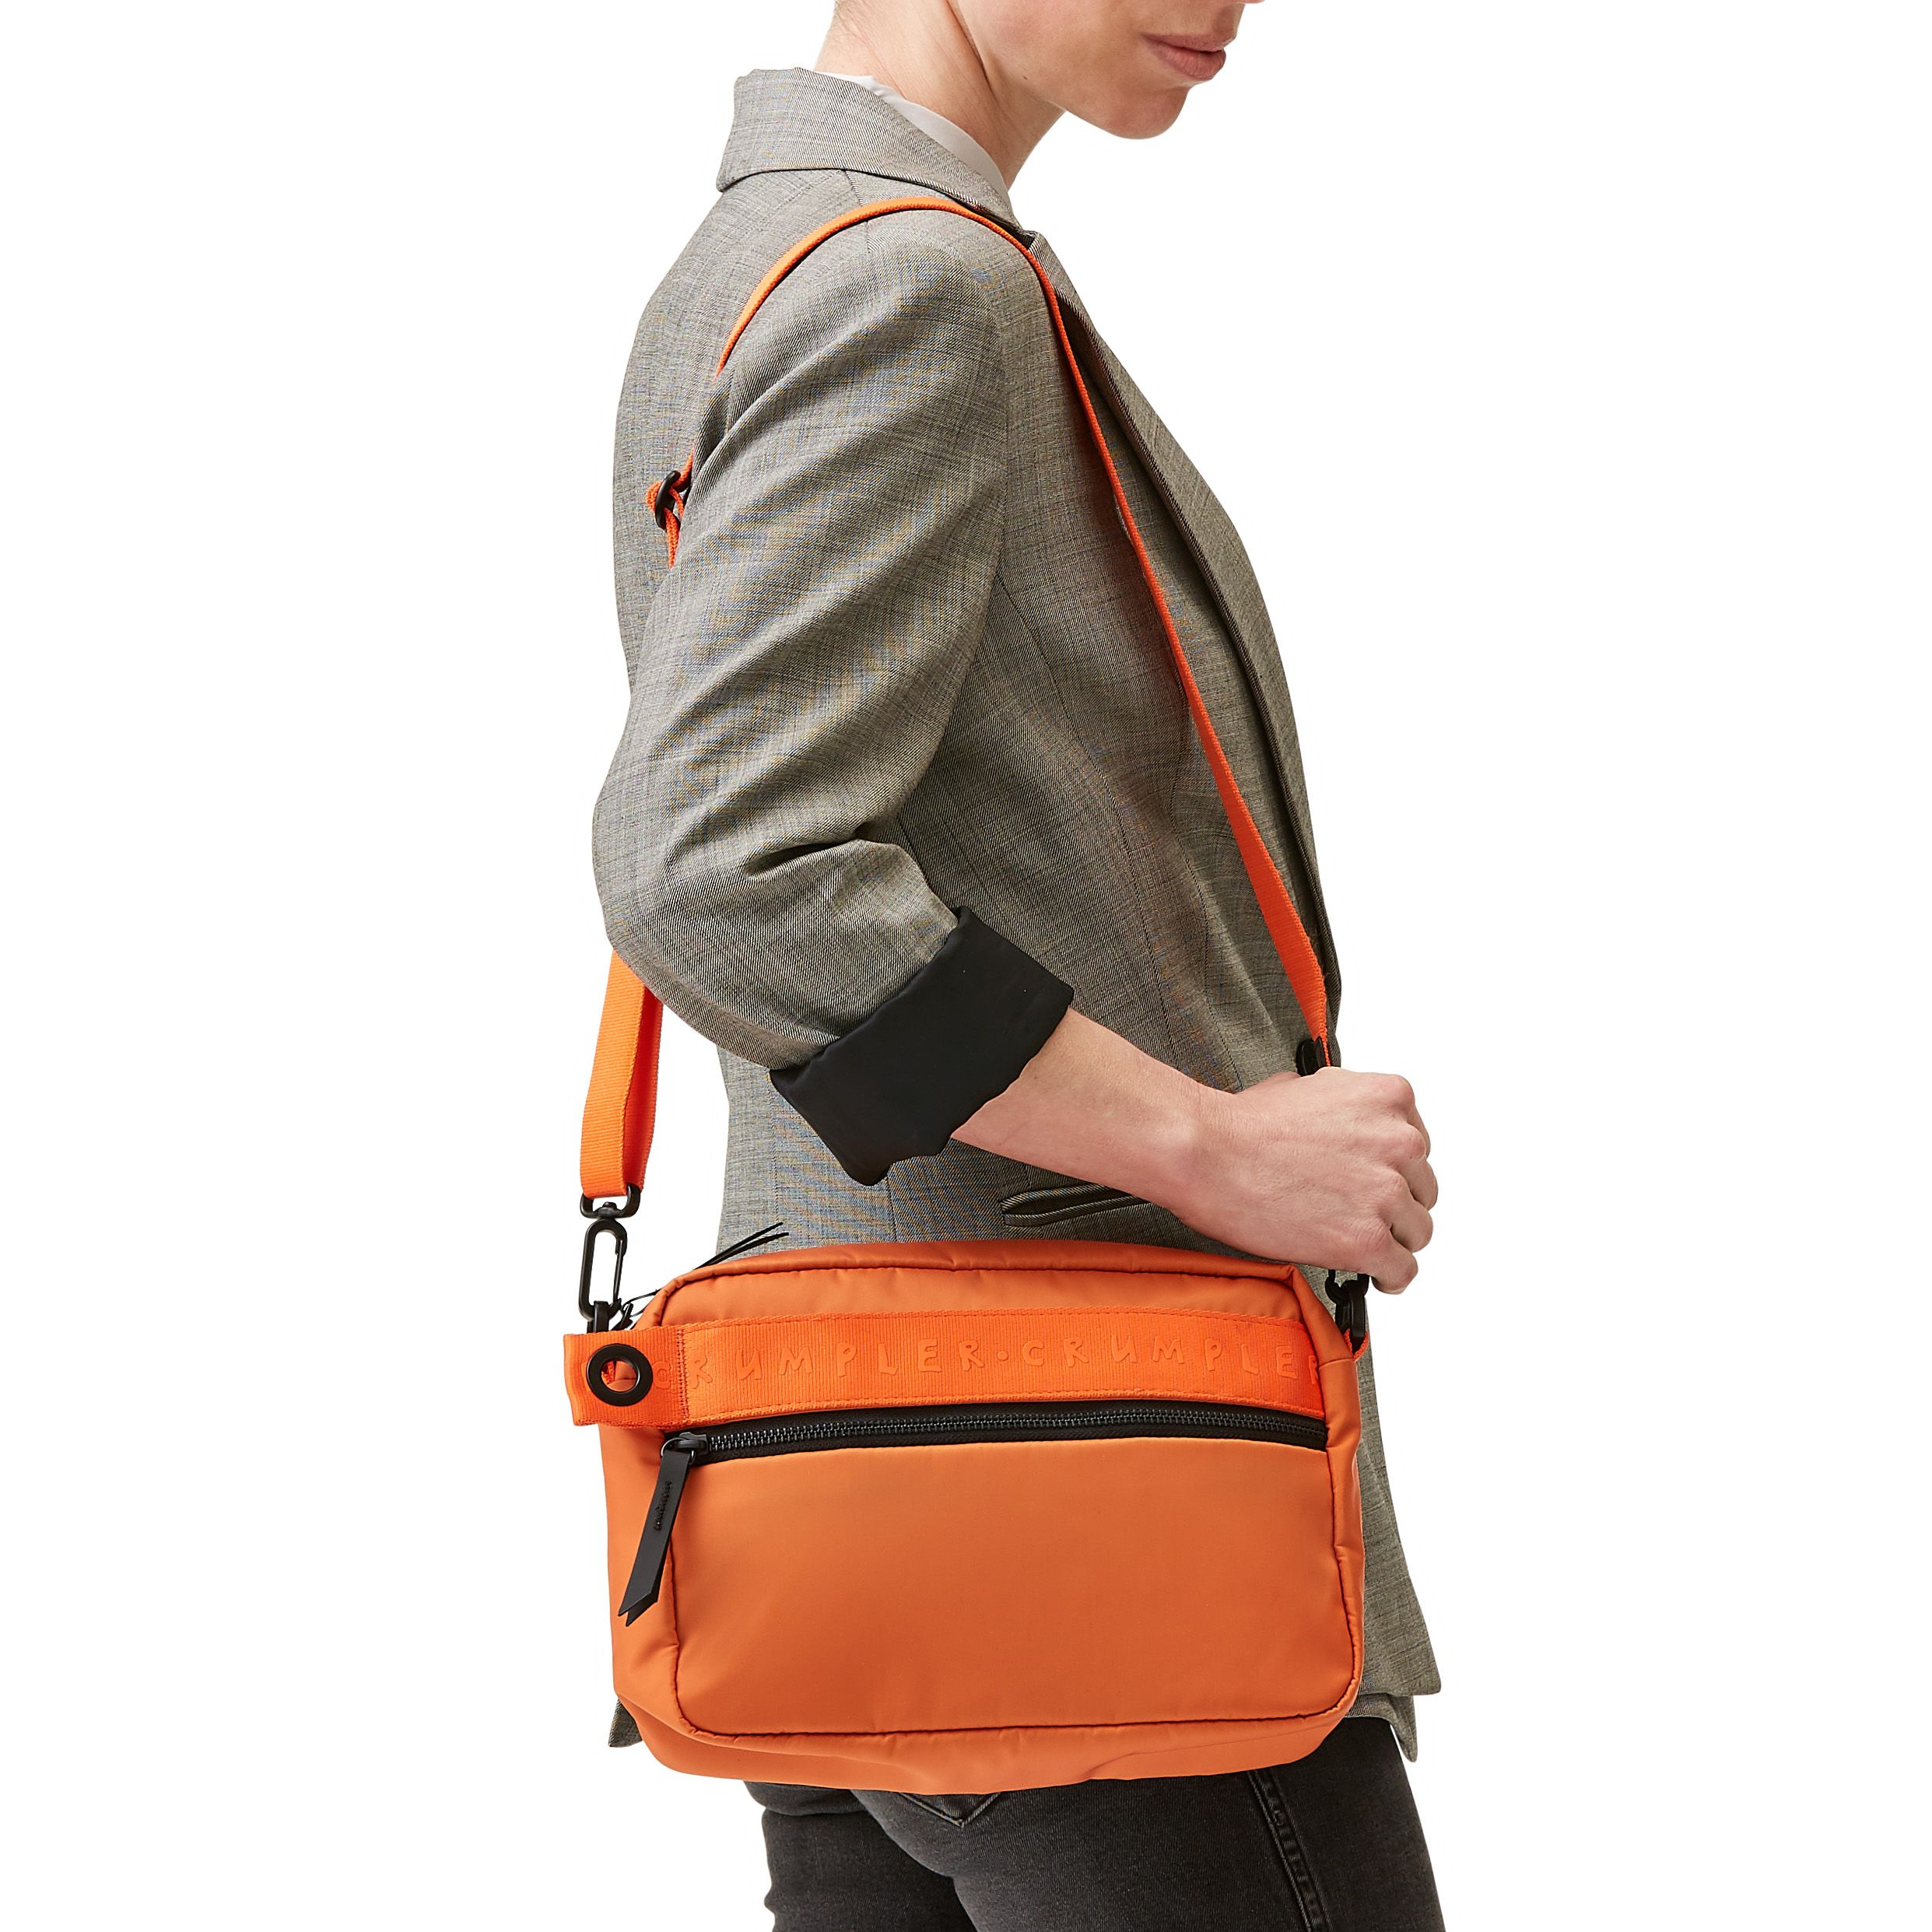 9d82c28e6b6 The Hot Spot hip-pack in Jaffa #crumpler #toughbags #sportsluxe  #sportsluxebags #orangebags #springbags #springfashion #crossbodybags